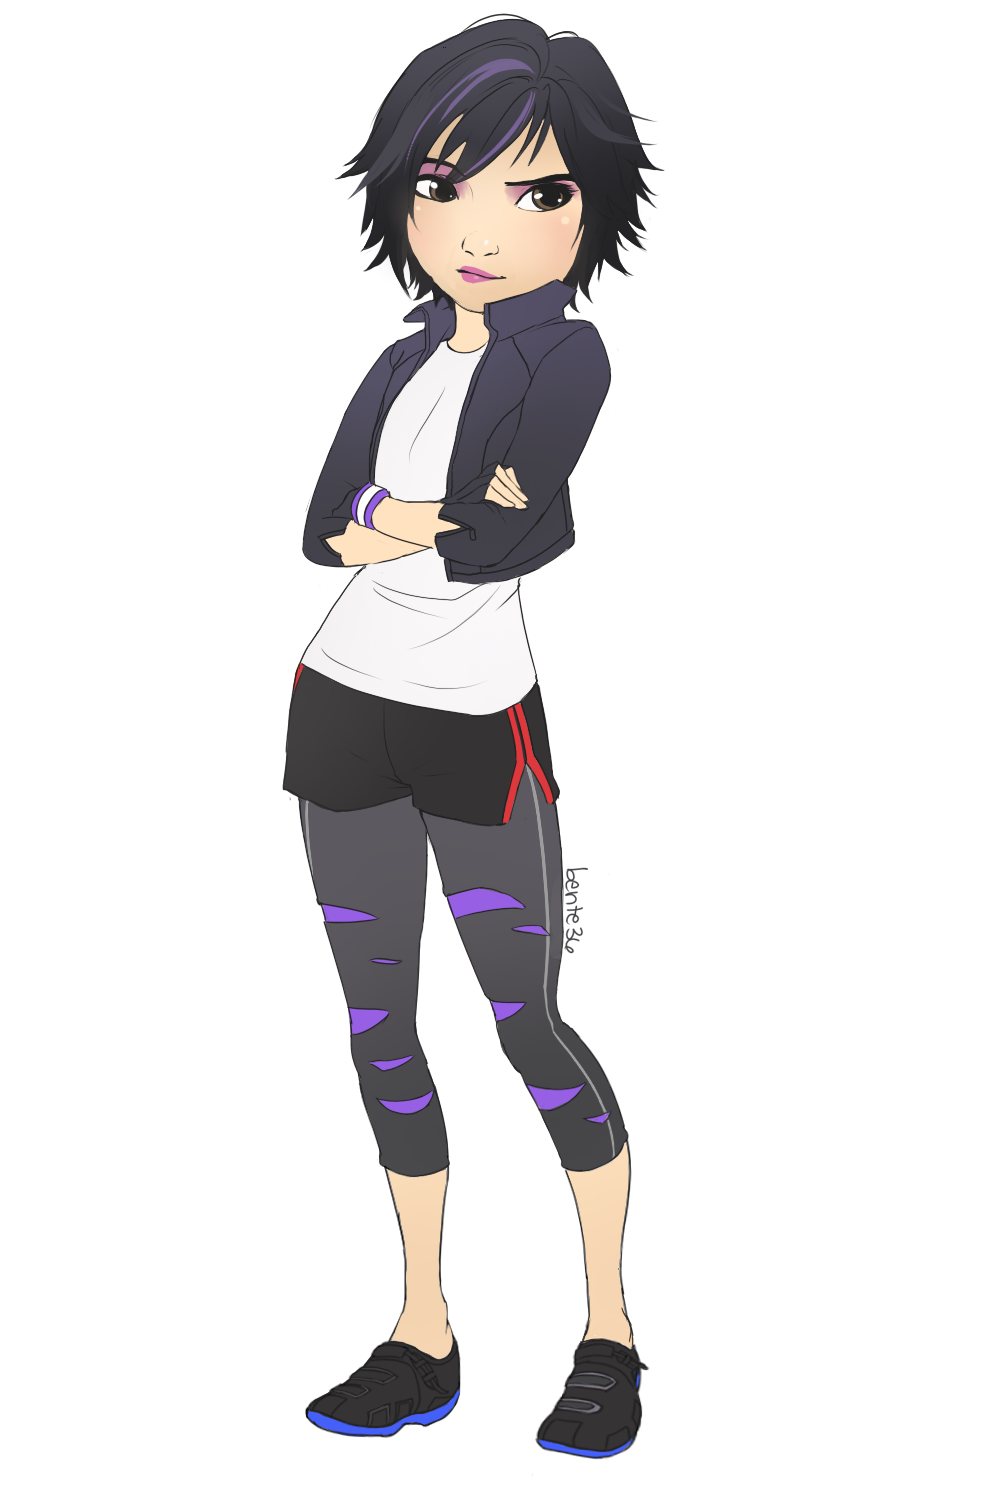 Hiro And Gogo Fanart GoGo Tomago - big-hero-6 Fan